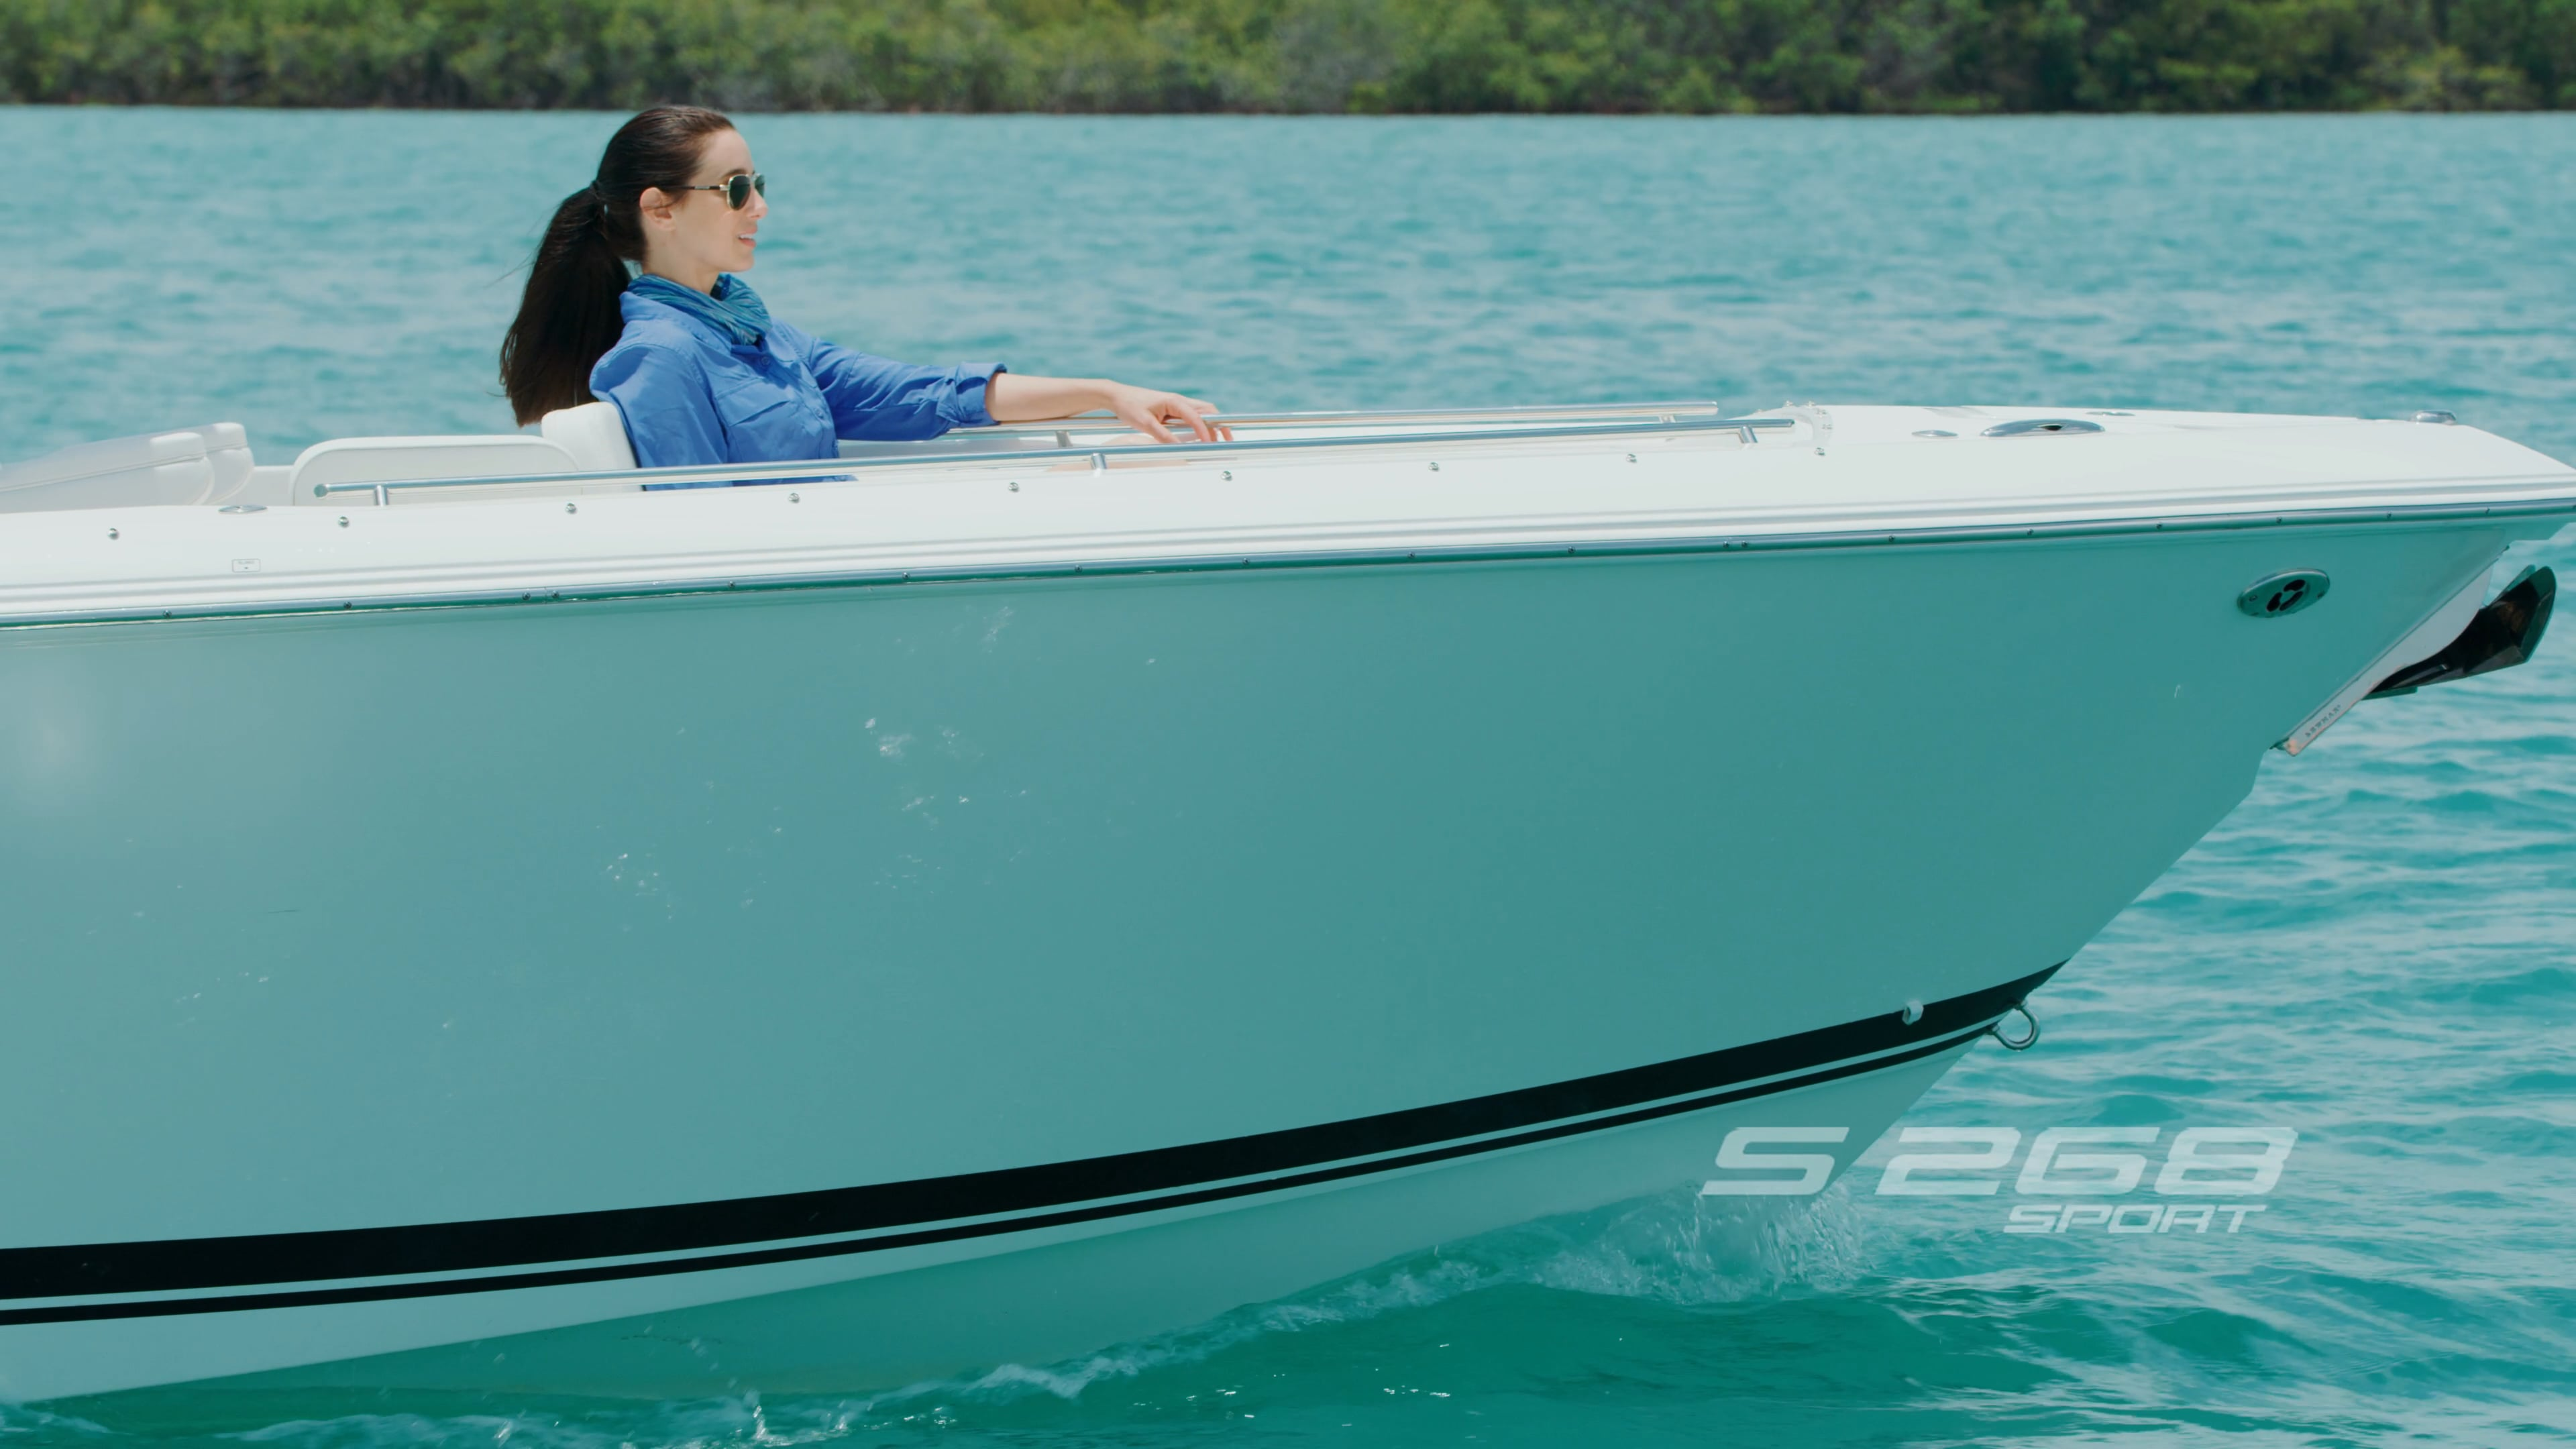 Detail profile view of S 268 Sport Boat with woman seated in bow seating area.